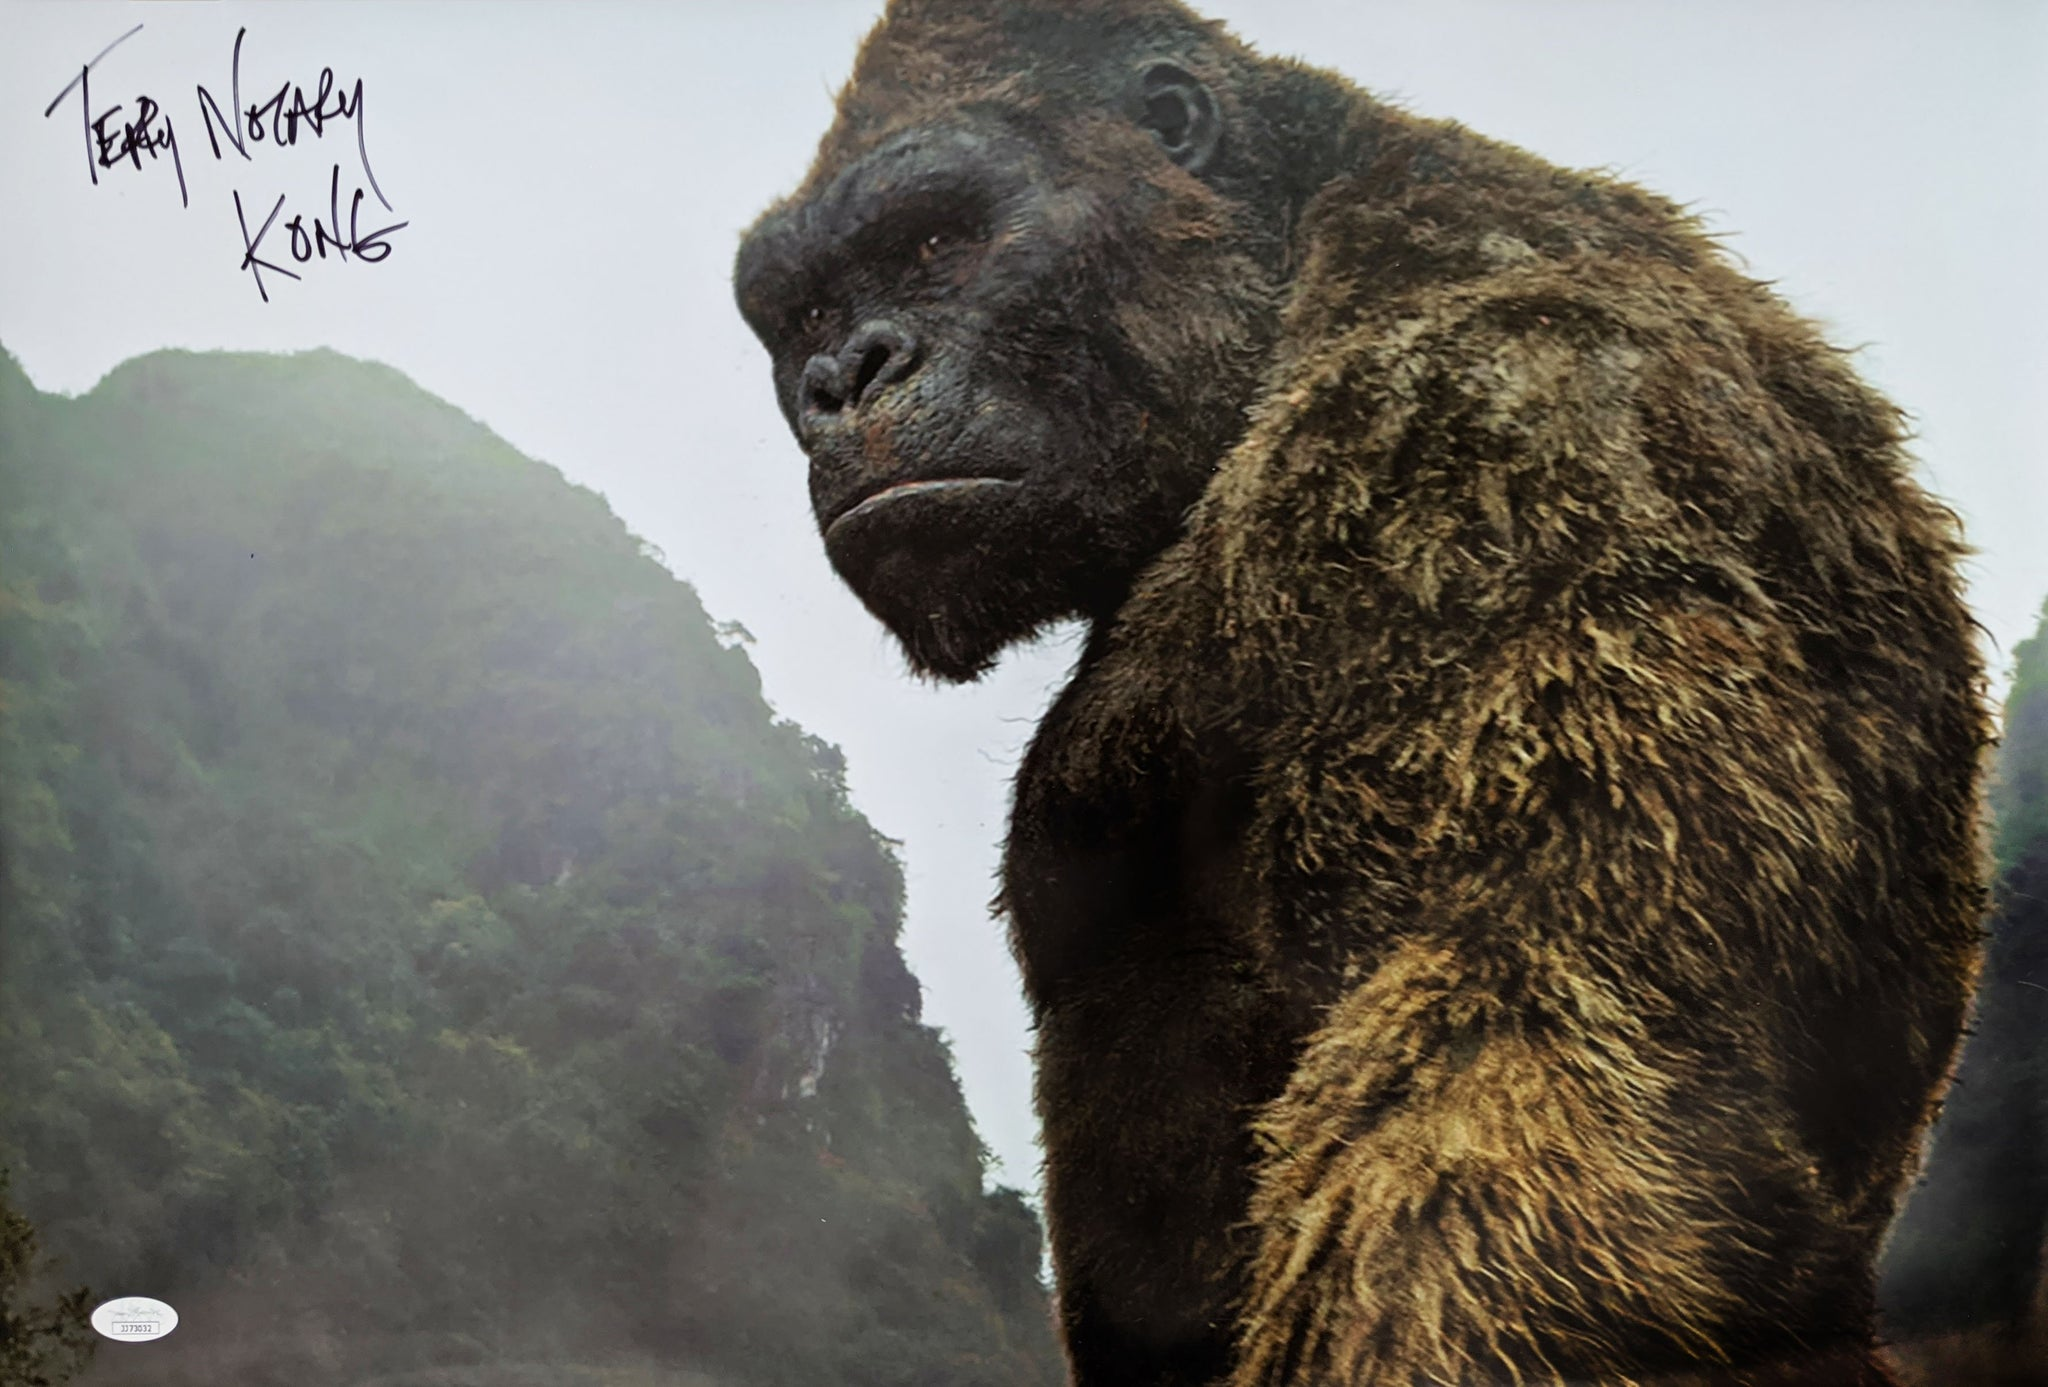 Terry Notary Kong Skull Island 16x24 Photo Signed Autographed JSA Certified COA GalaxyCon